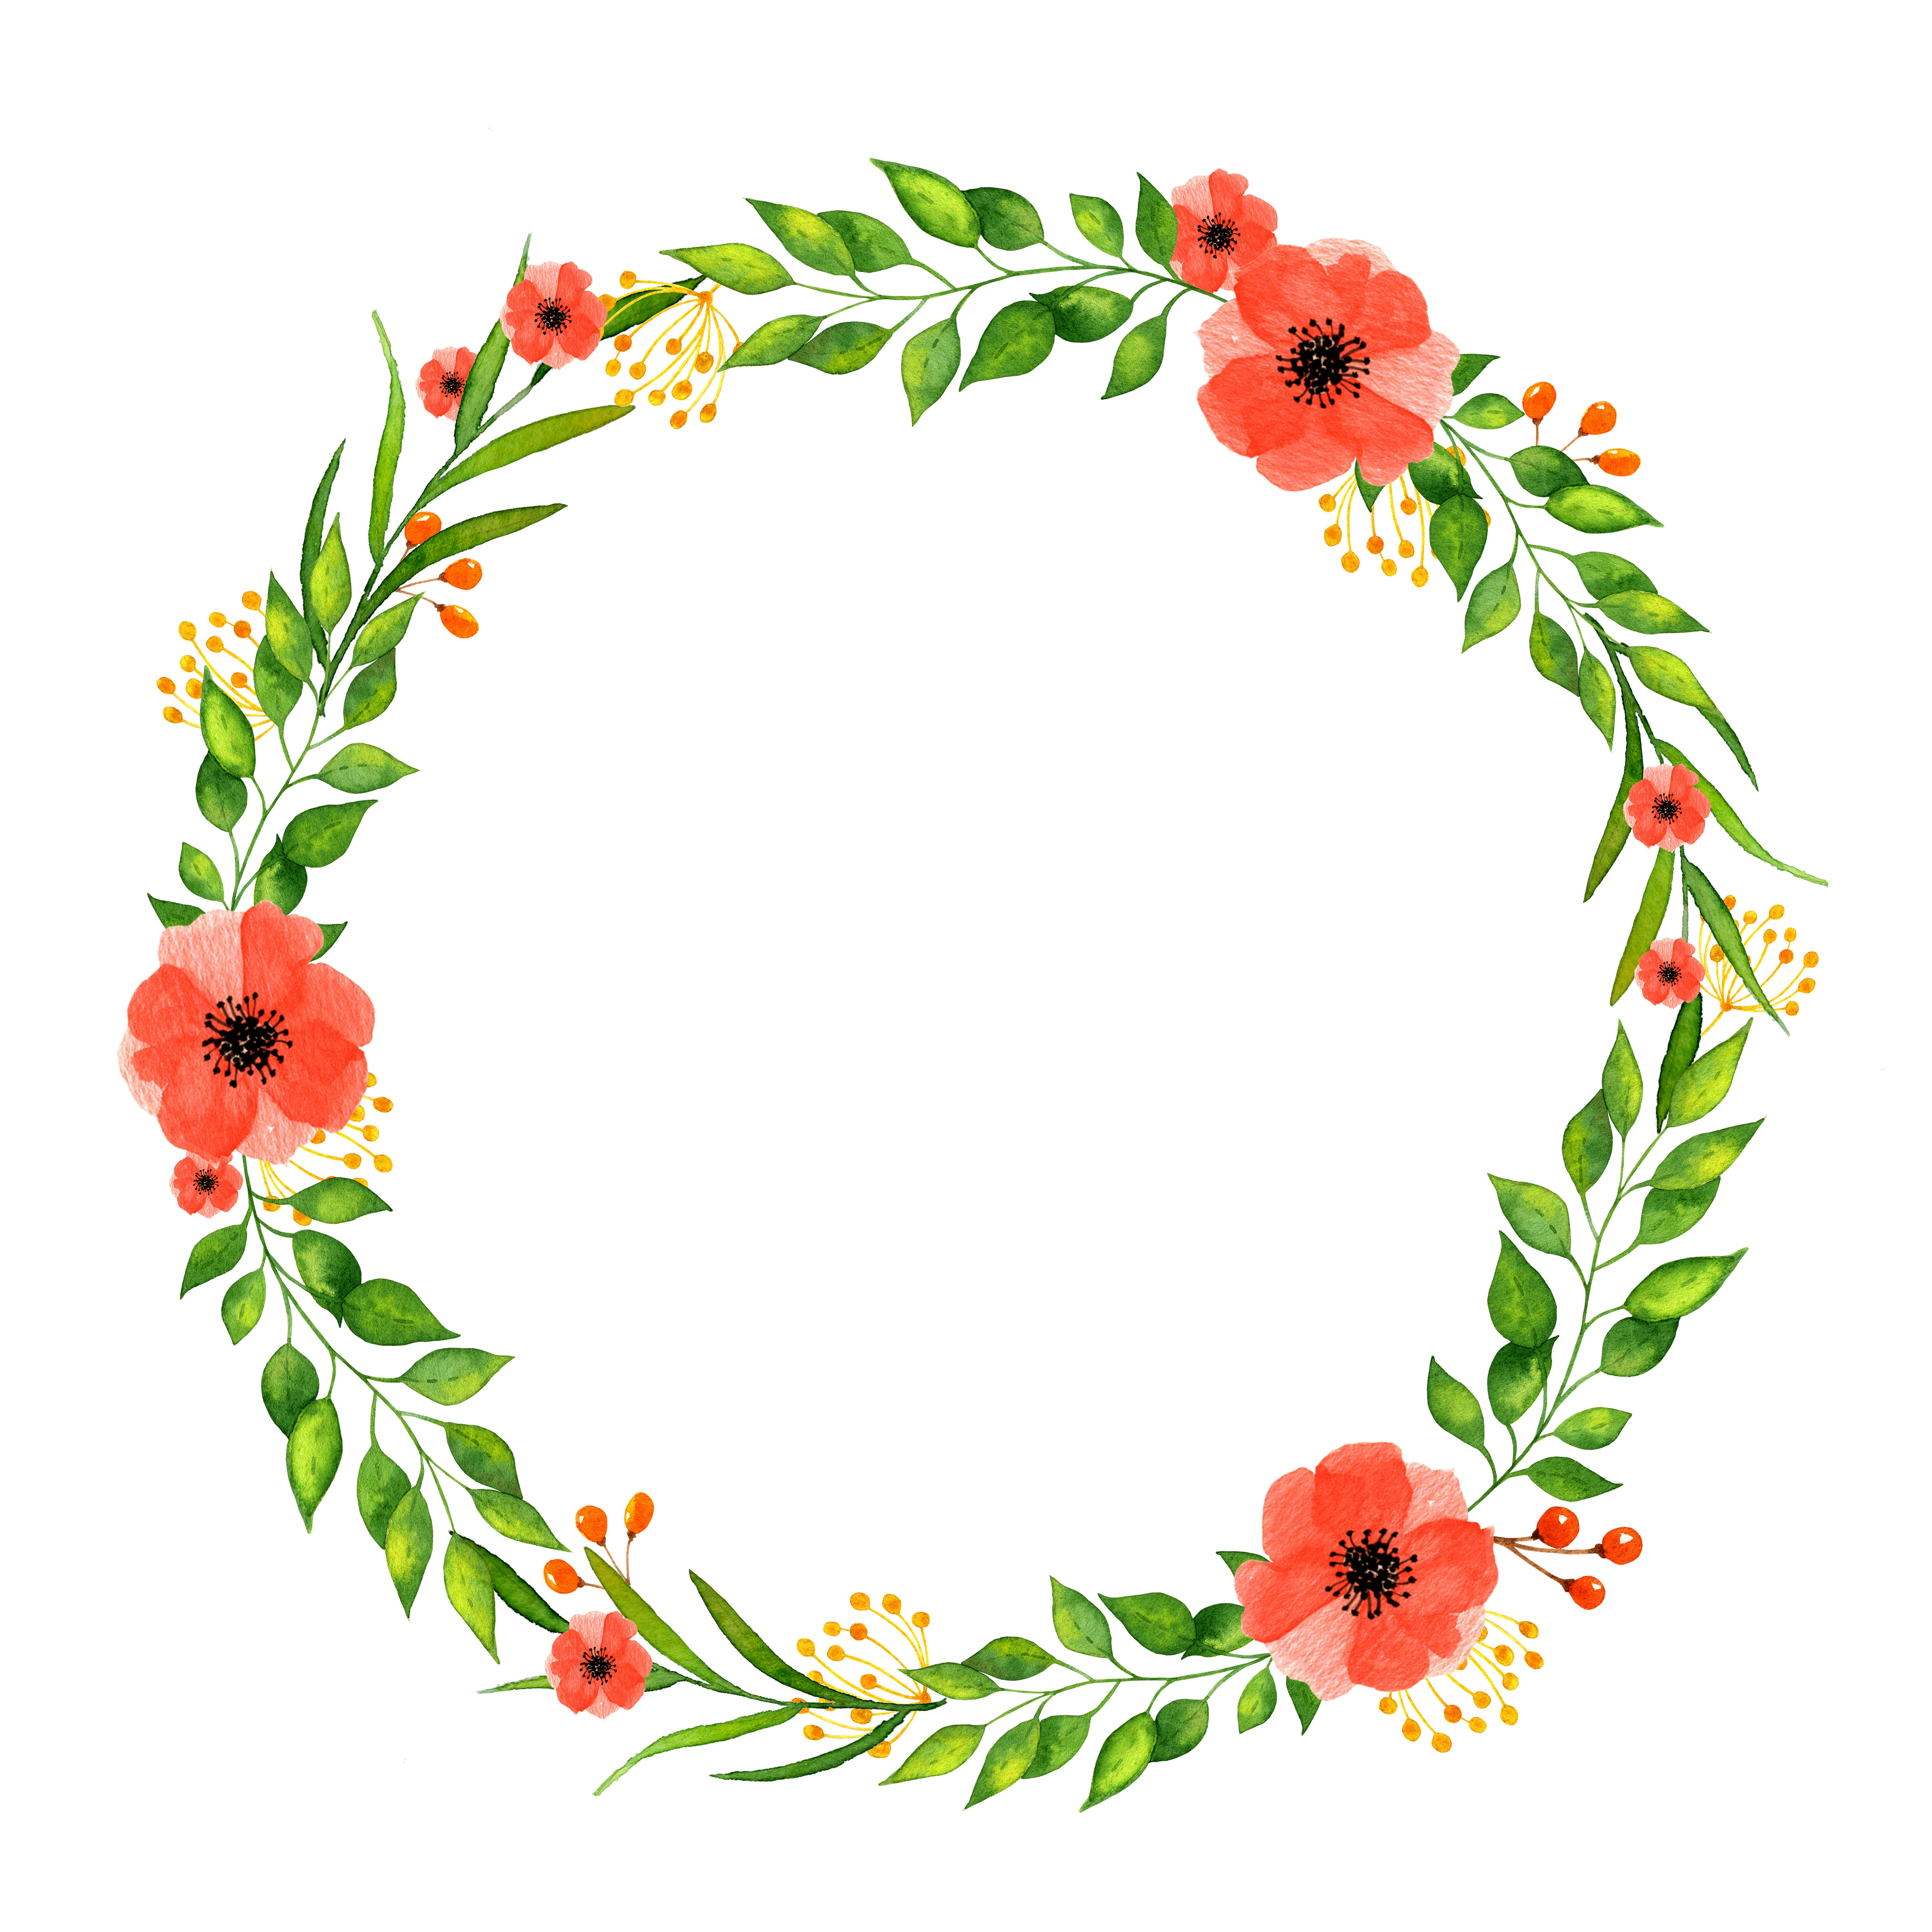 Red Summer Flowers Wreath Clipart Poppies Berries And Green Etsy Paper Texture Background Watercolors Flower Wreath Clip Art